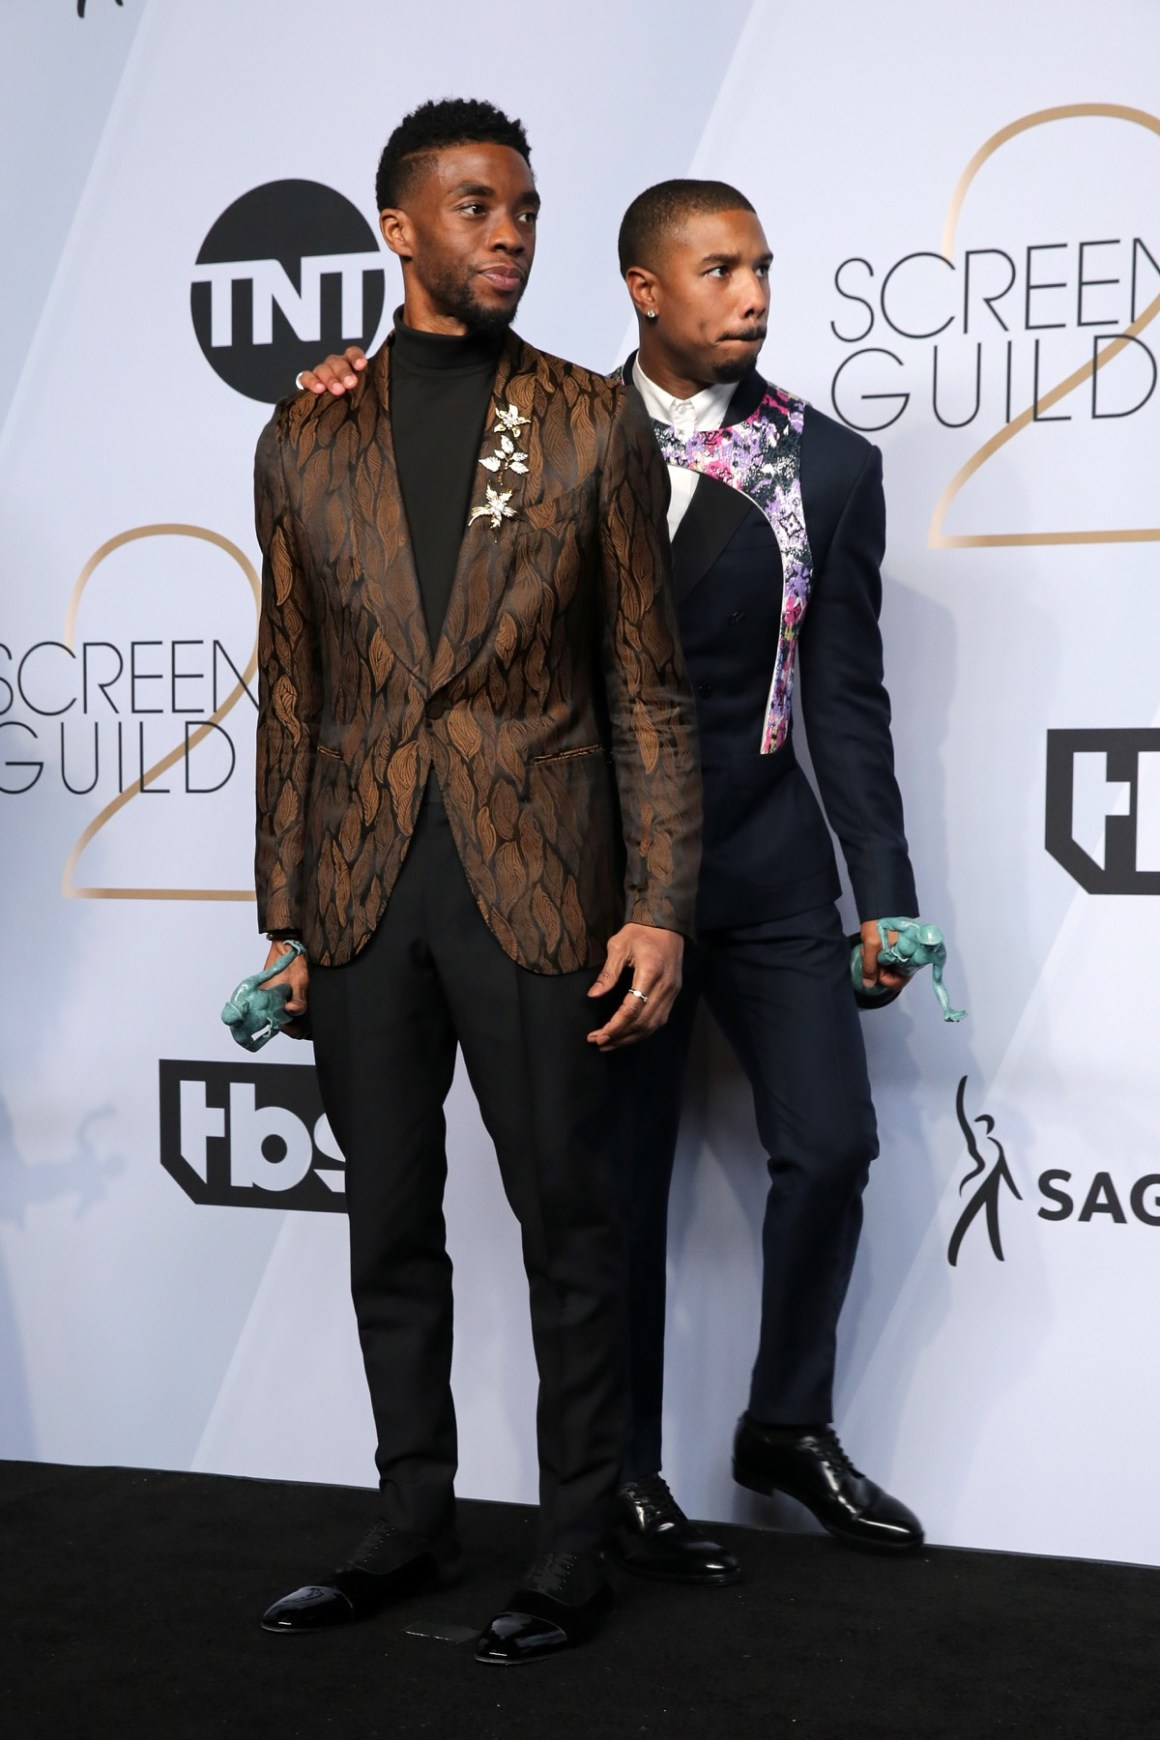 Chadwick Boseman and Michael B. Jordan 25th Annual Screen Actors Guild Awards - Press Room